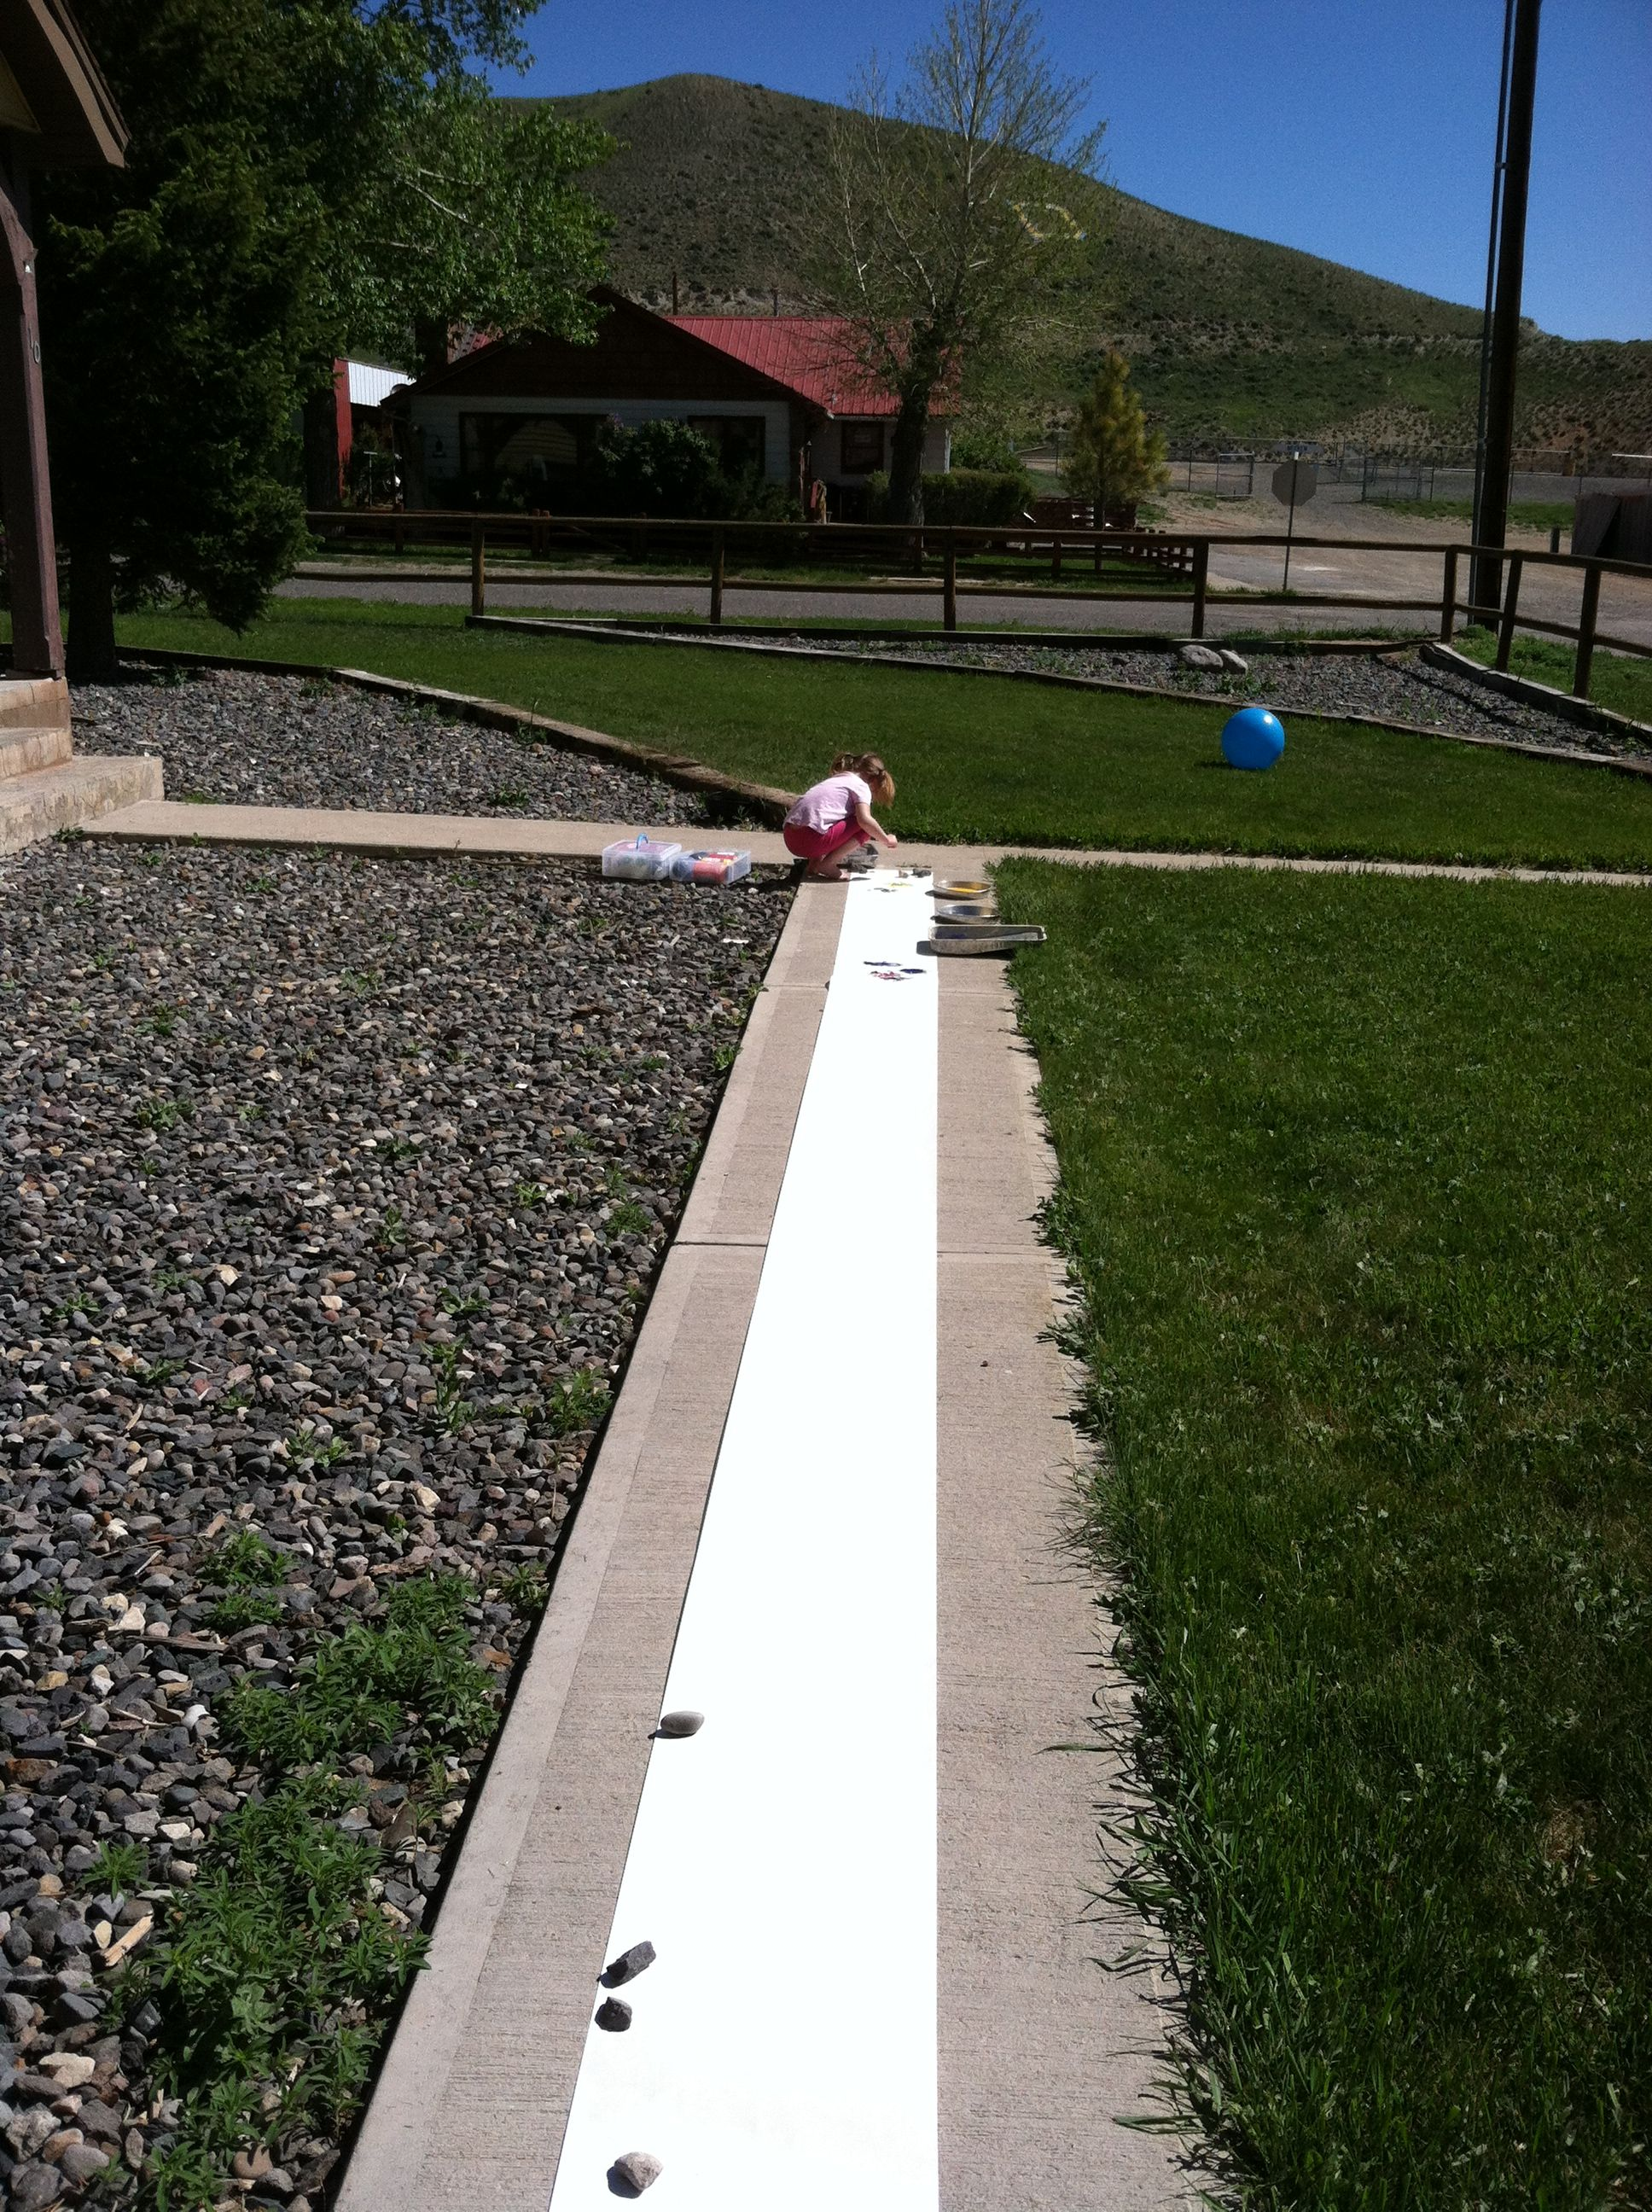 Using a roll of craft paper, line the sidewalk with paper.